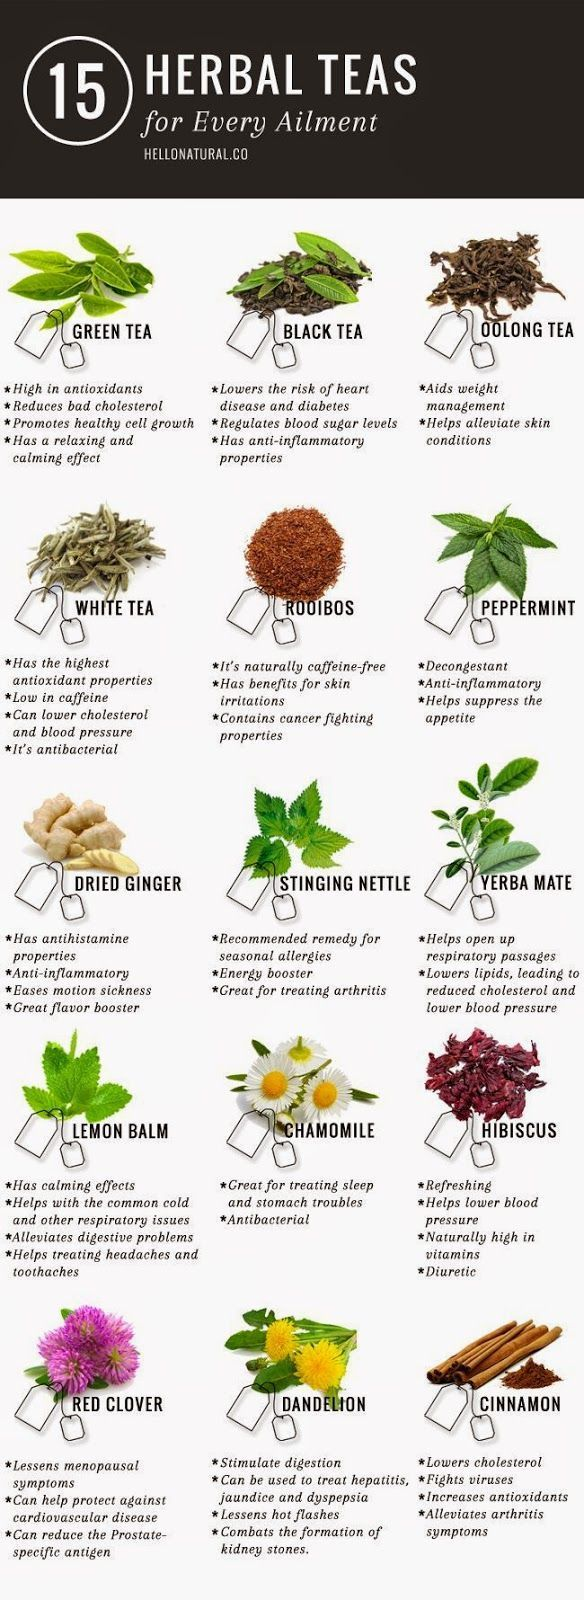 "Green tea is not the only tea with promising (and according to many sources, PROVEN) health benefits. This infographic illustrates and describes 14 other healing herbal teas. <a href=""http://www.detoxmetea.com"" rel=""nofollow"" target=""_blank"">www.detoxmetea.com</a> http://www.detoxmetea.comproducts/weight-loss-detox-tea-14-day-kick-starter-pack?utm_content=buffer84043&utm_medium=social&utm_source=pinterest.com&utm_campaign=buffer"